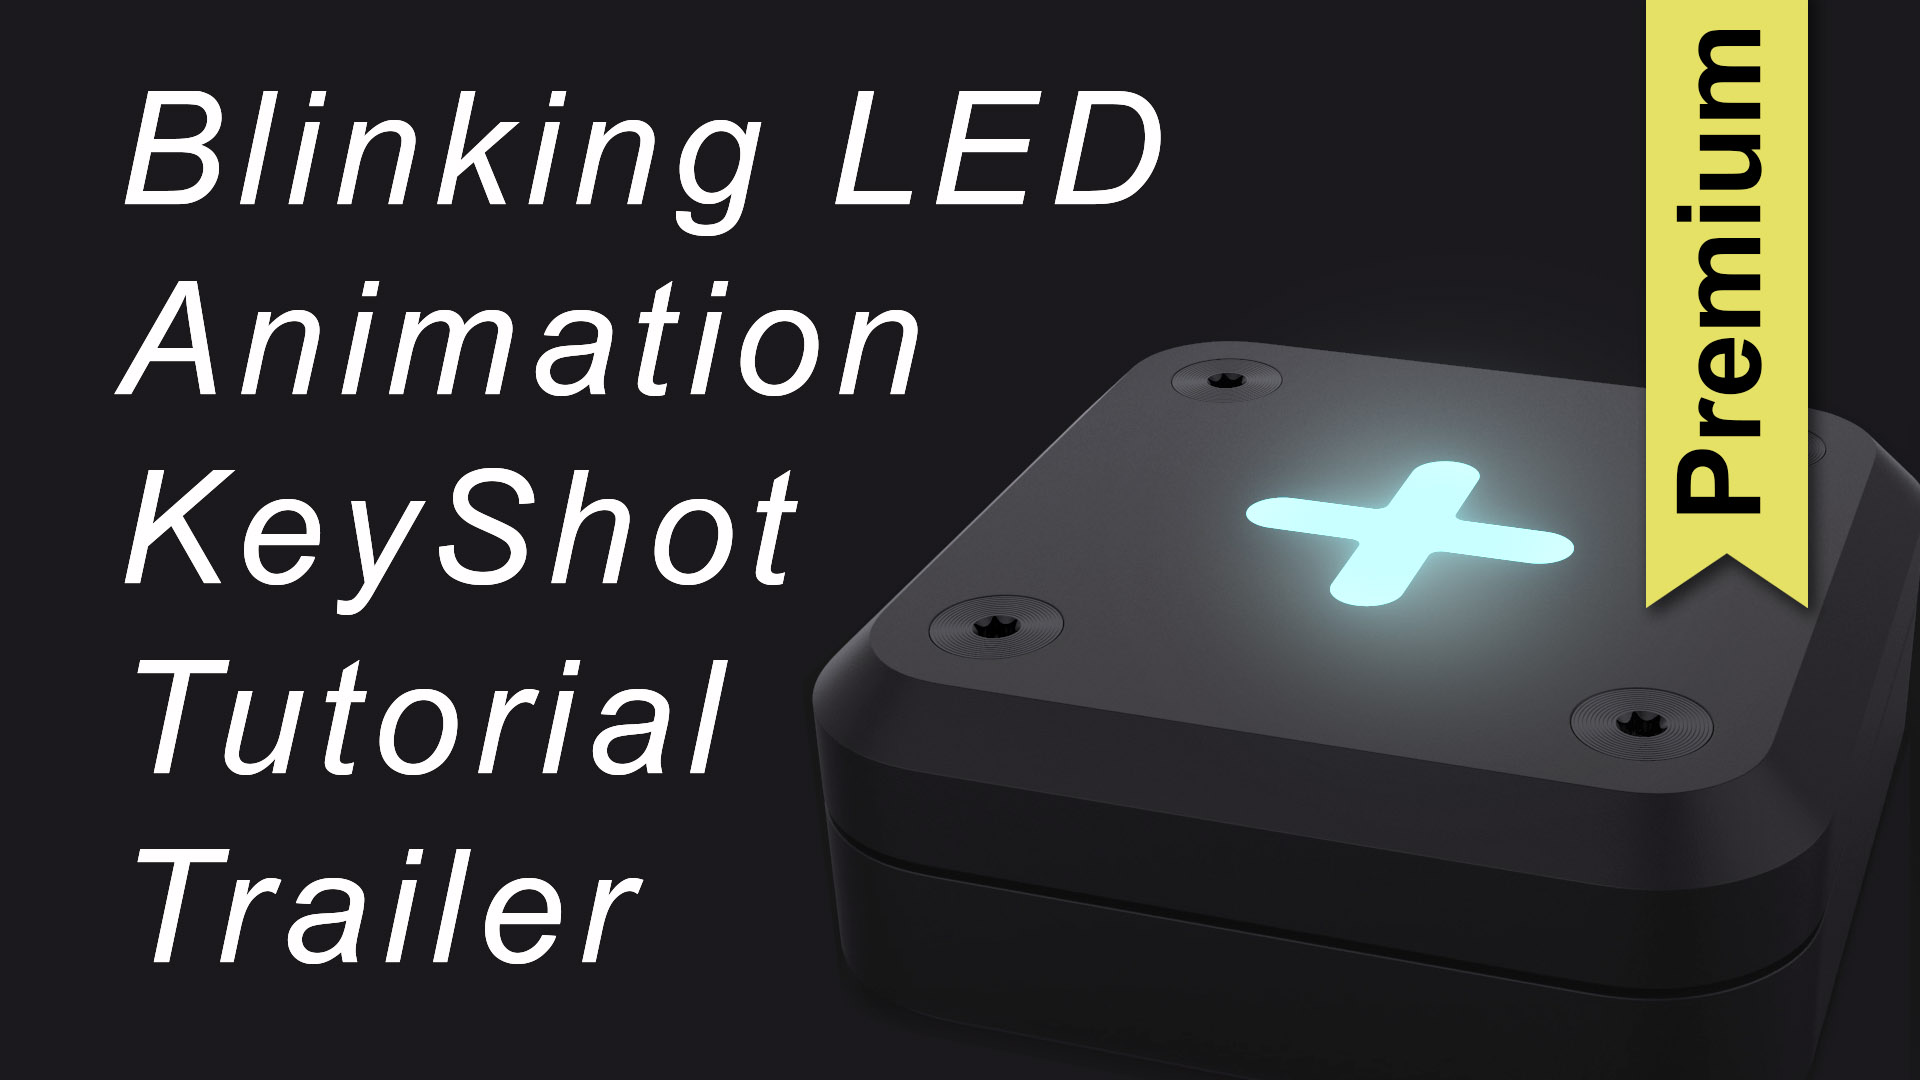 Blinking LED Animation Tutorial Premium Trailer.jpg